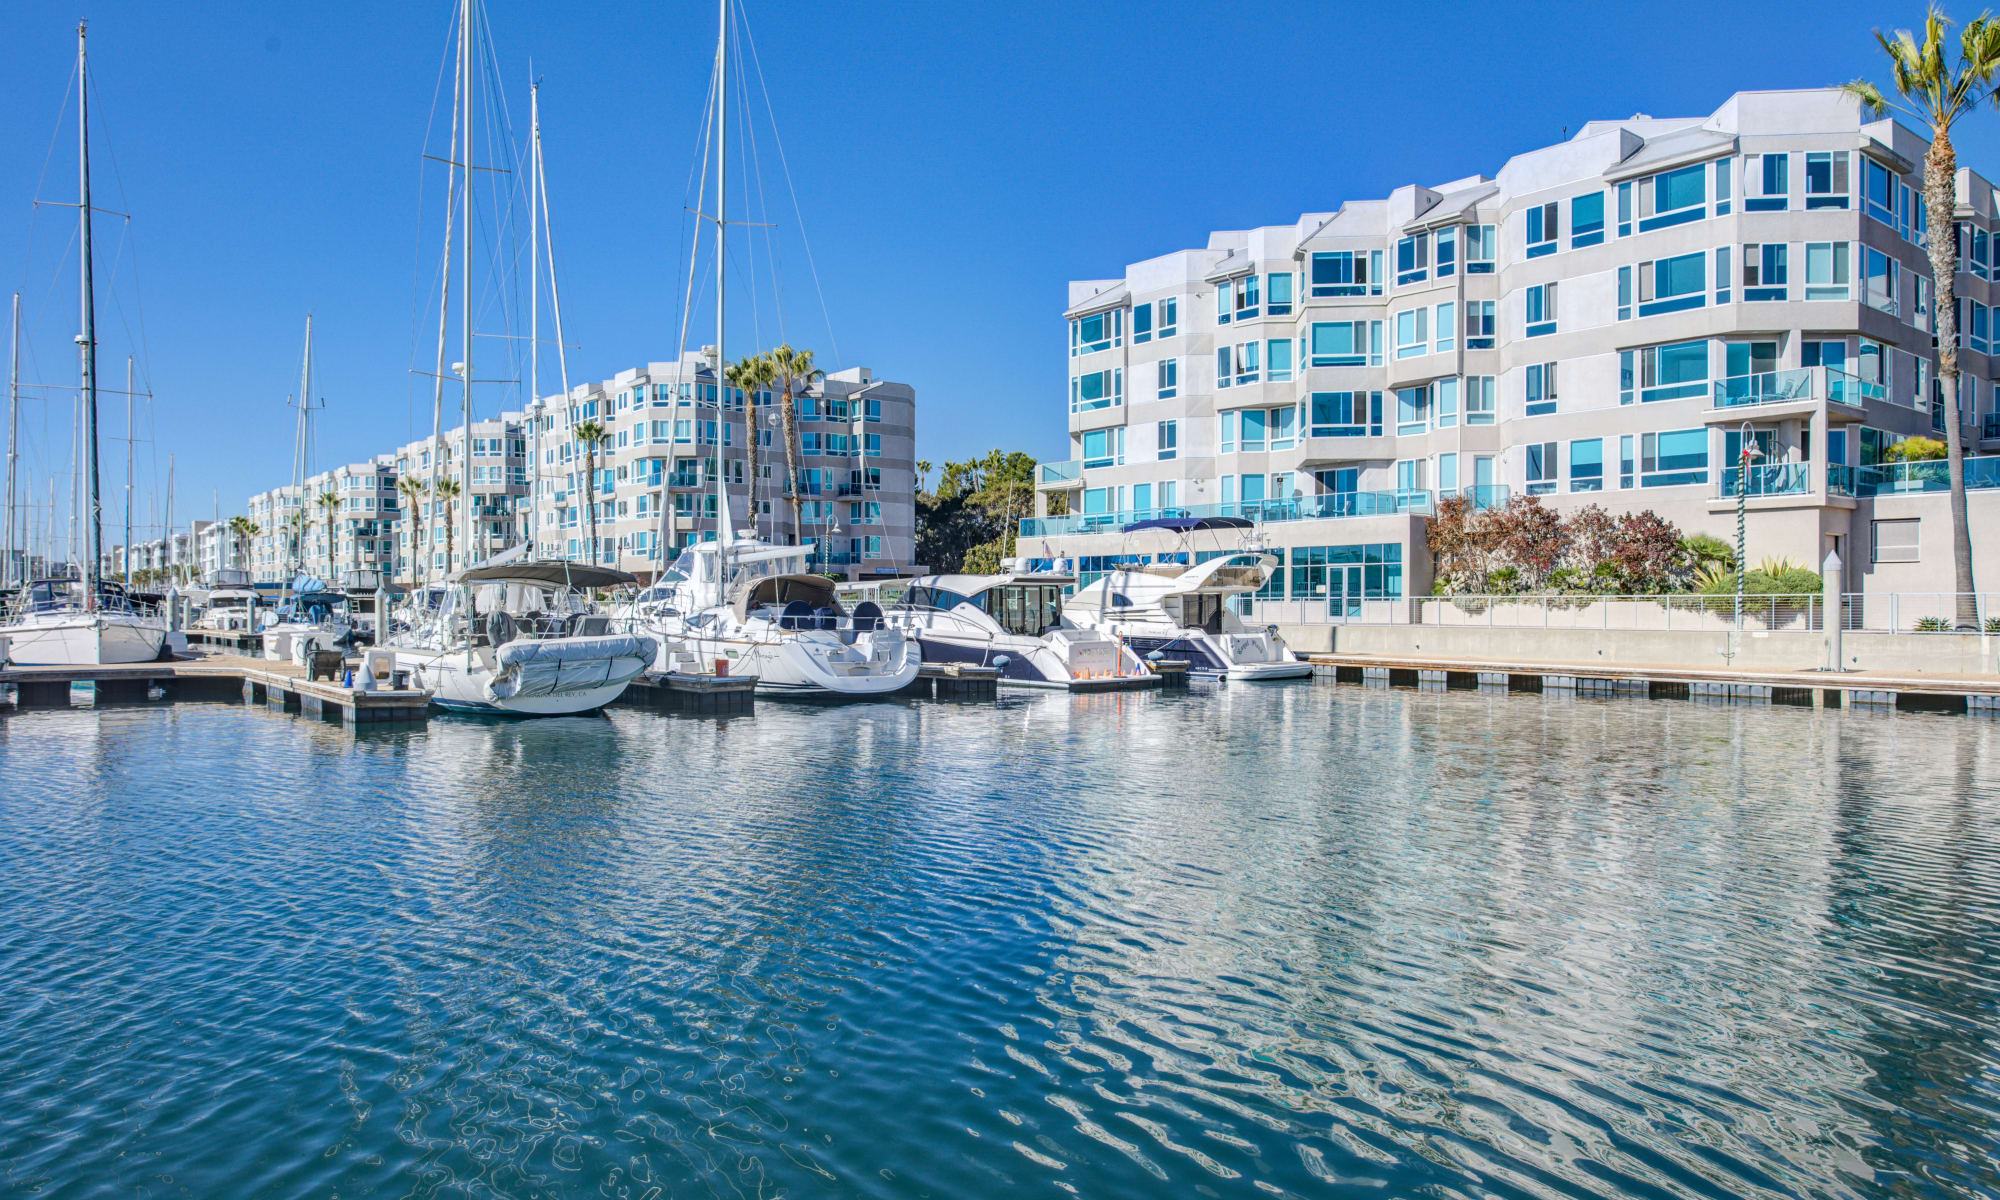 Water views at Esprit Marina del Rey in Marina Del Rey, California